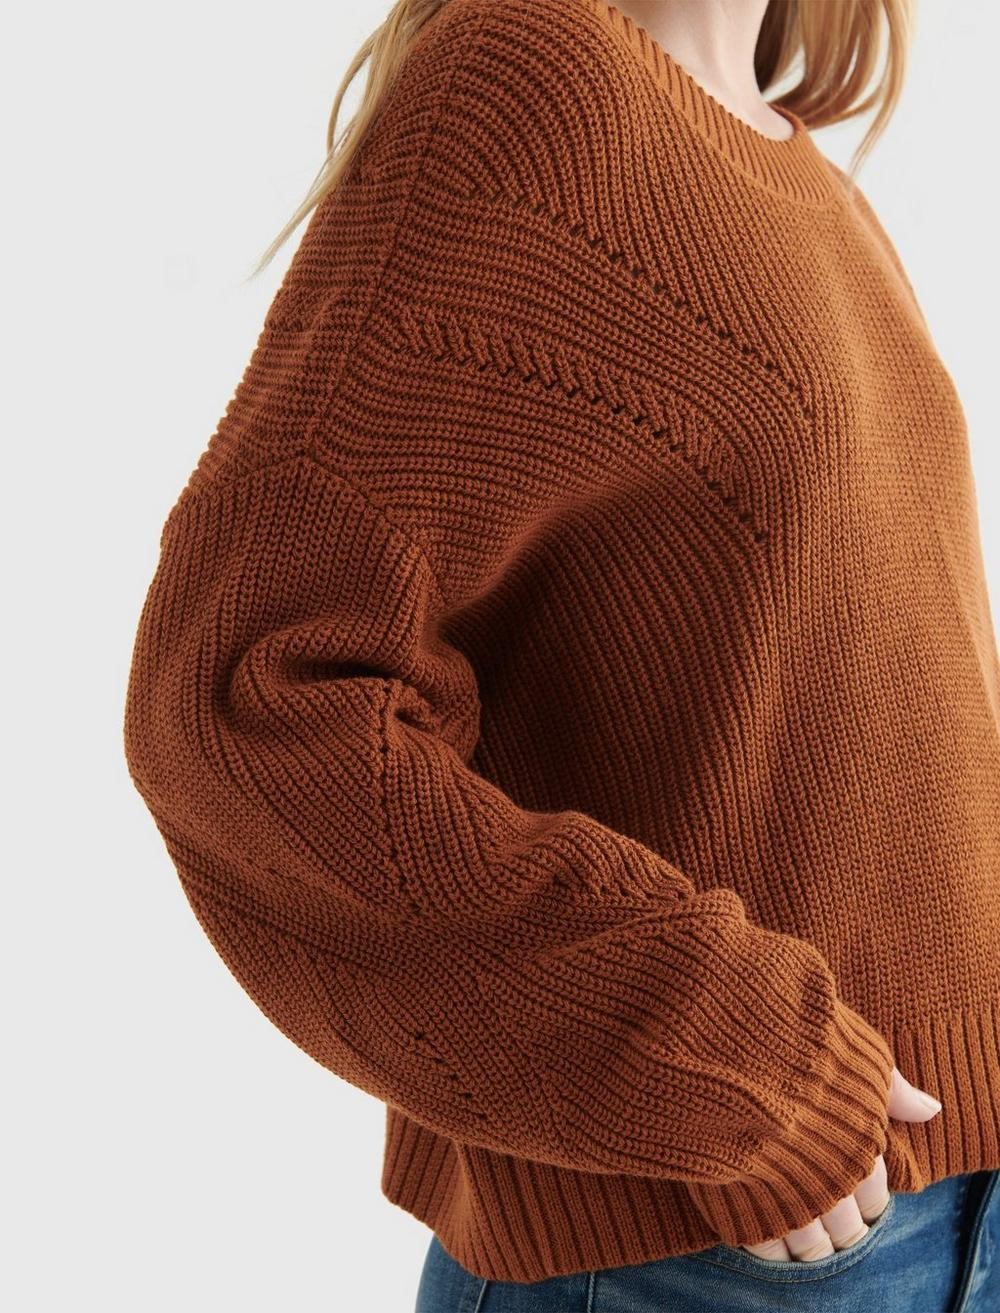 CROPPED RIB-KNIT PULLOVER REVERSIBLE SWEATER, image 4